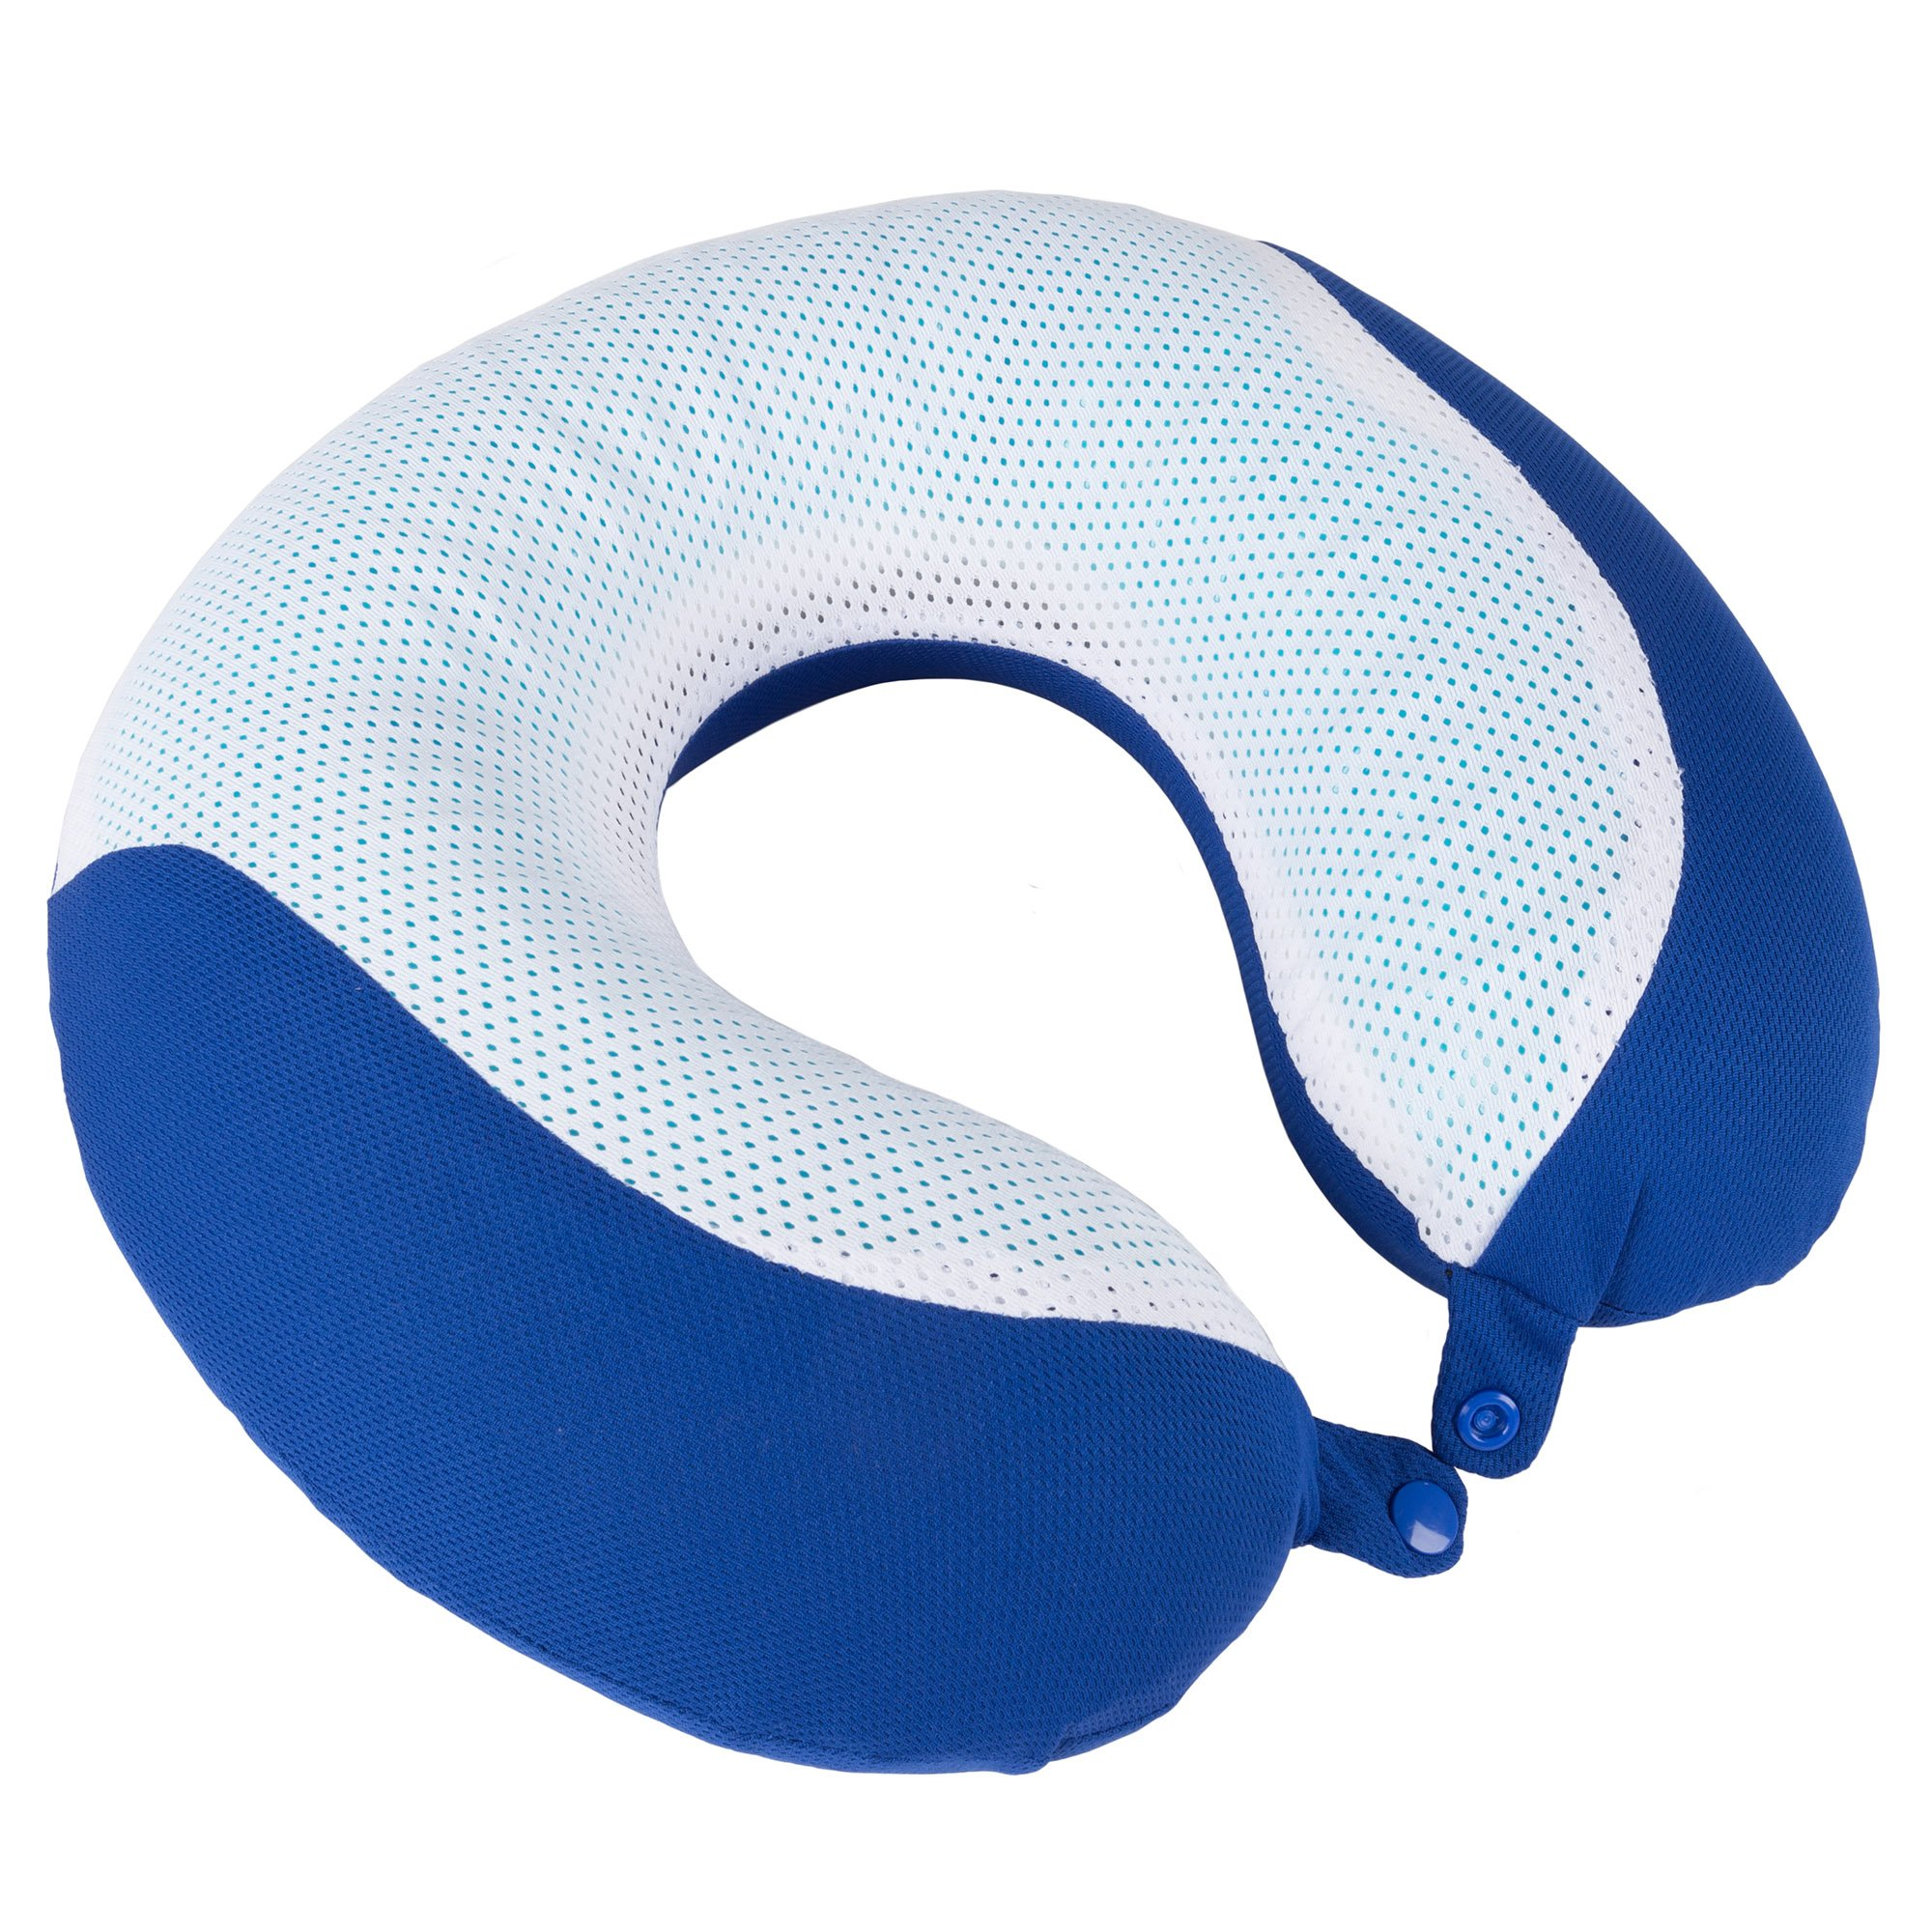 Memory Foam Travel Pillow- With Gel That Cools for Head/Neck Support with Pillowcase for Sleeping, Traveling, Airplanes, Trains by Lavish Home (Blue)